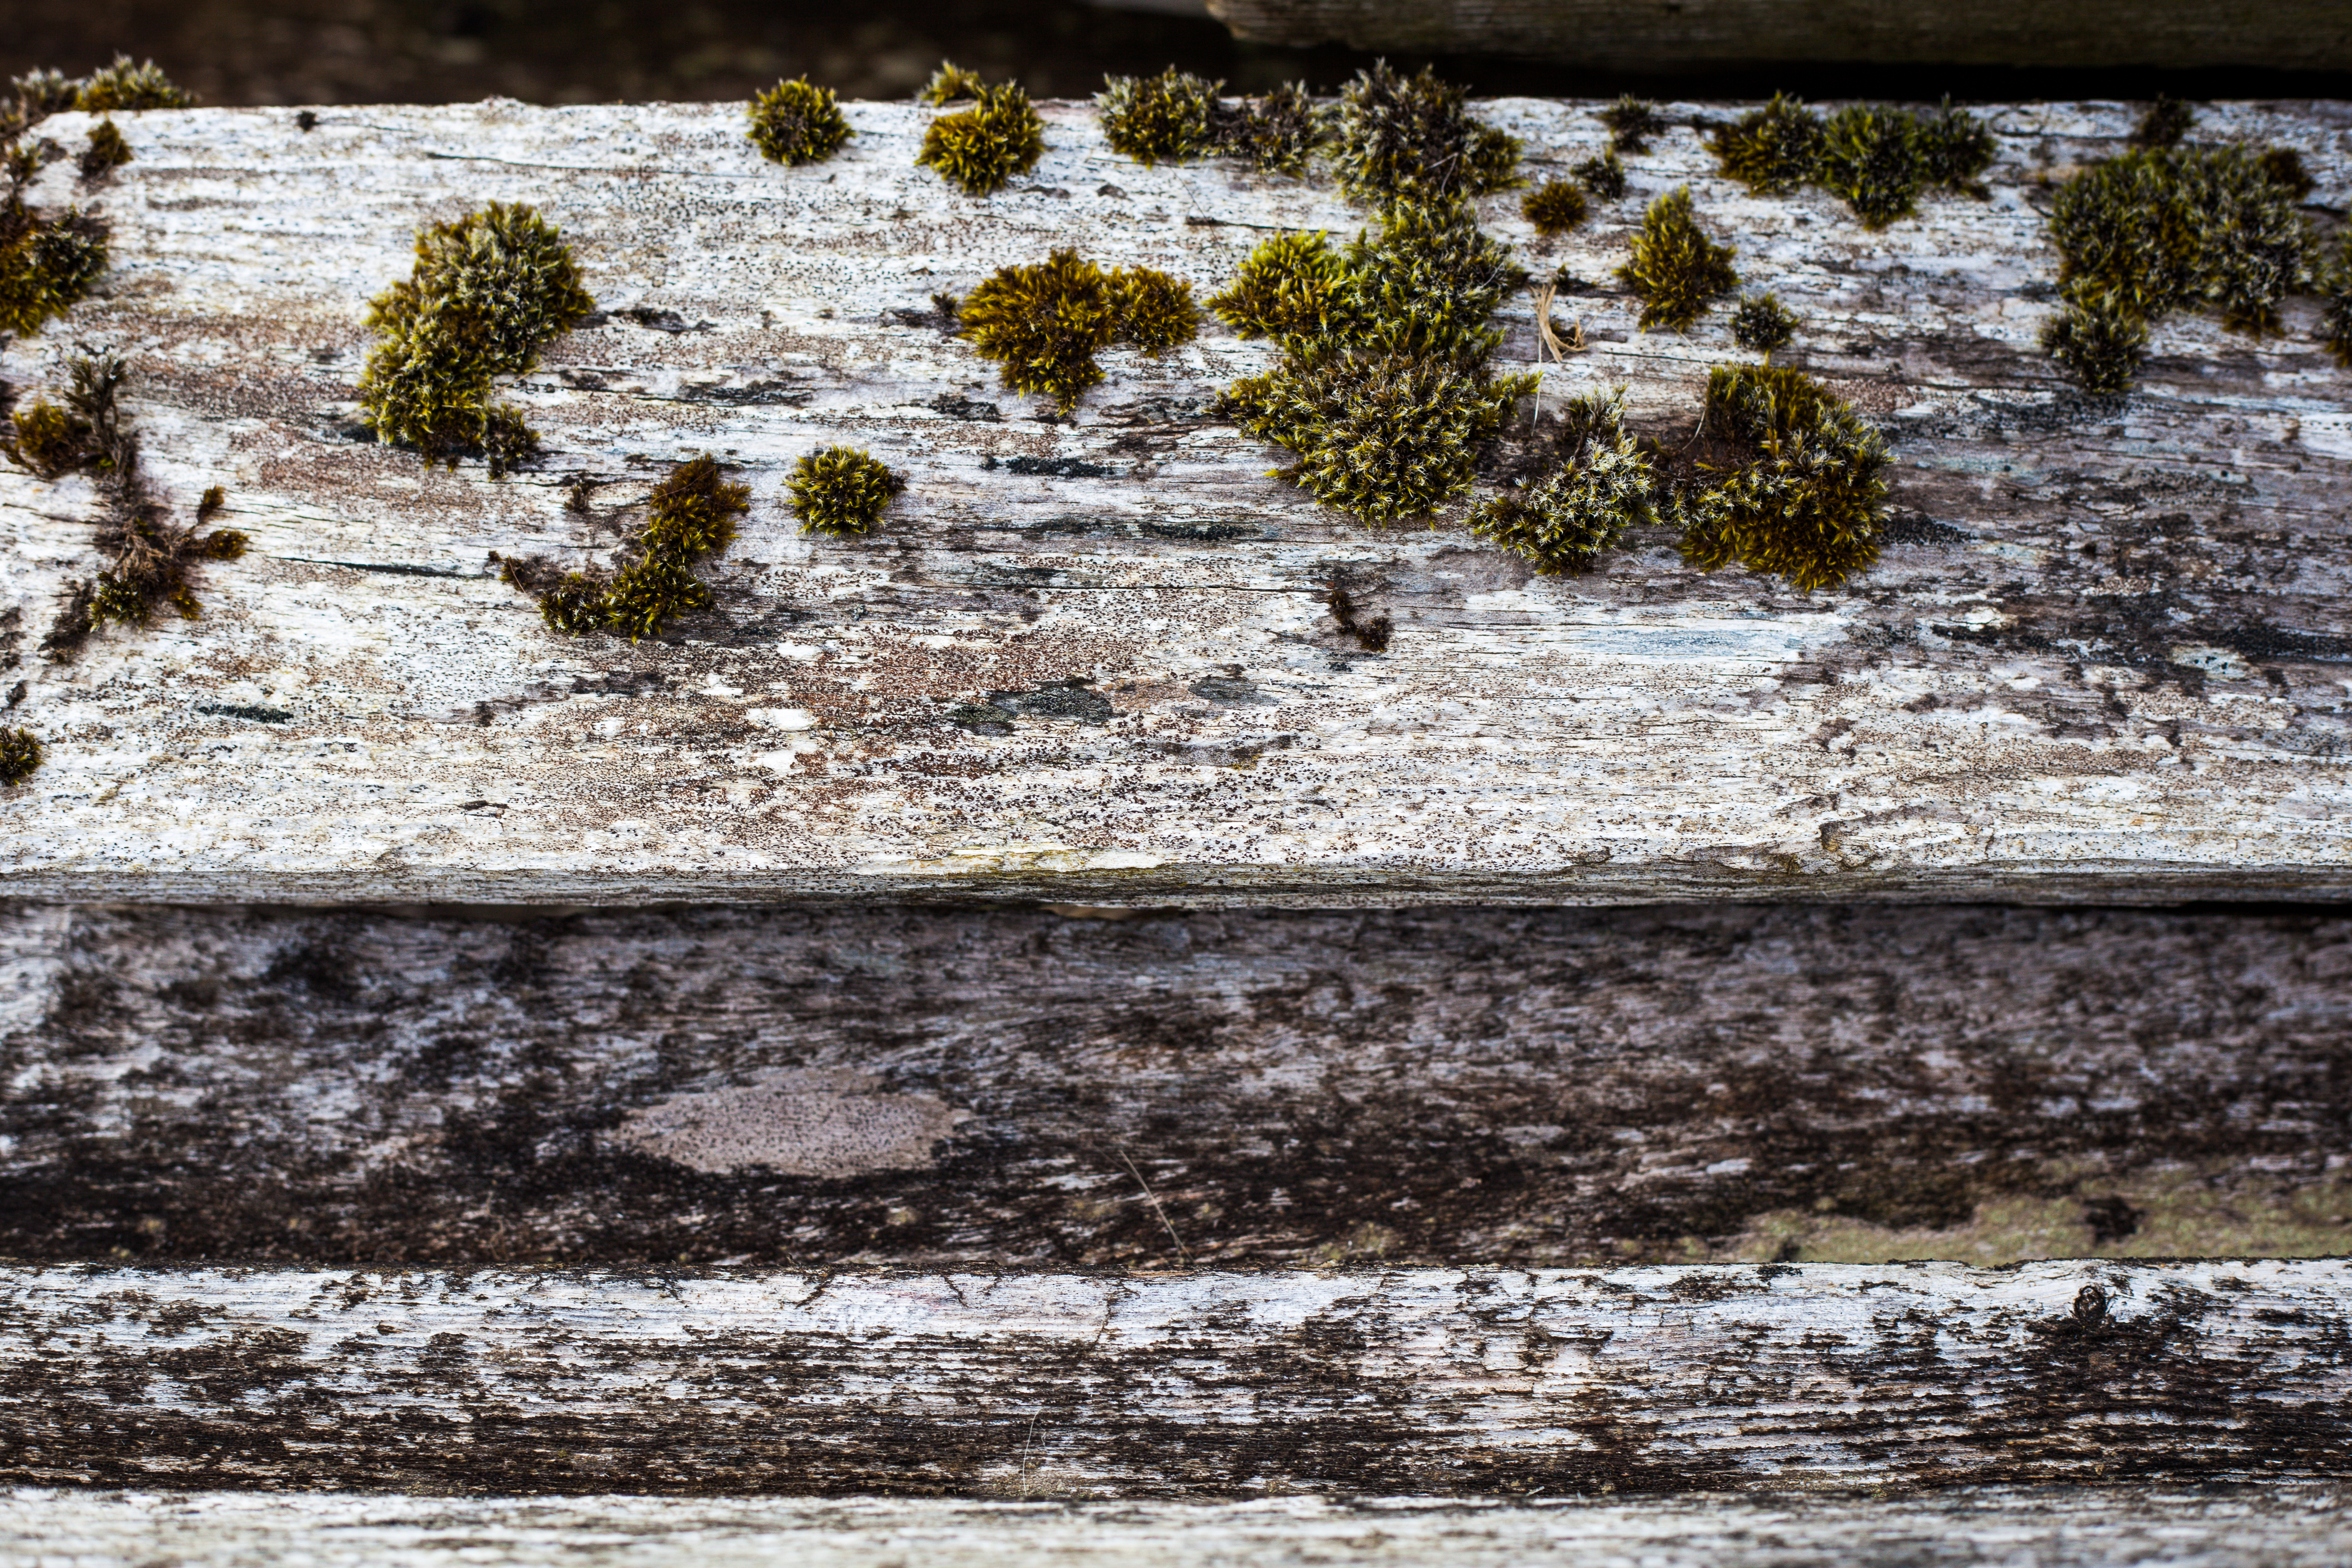 Old Wood with Moss, Aged, Grown, Molded, Moss, HQ Photo